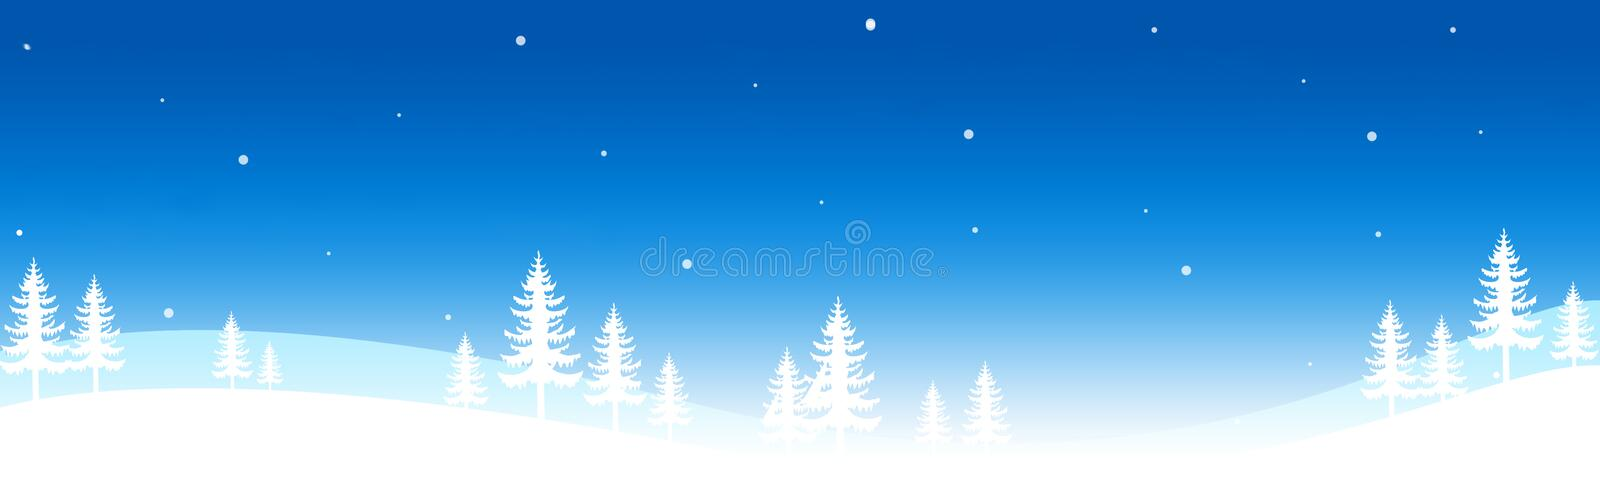 Download Winter Header / Banner stock illustration. Image of curl - 6407288